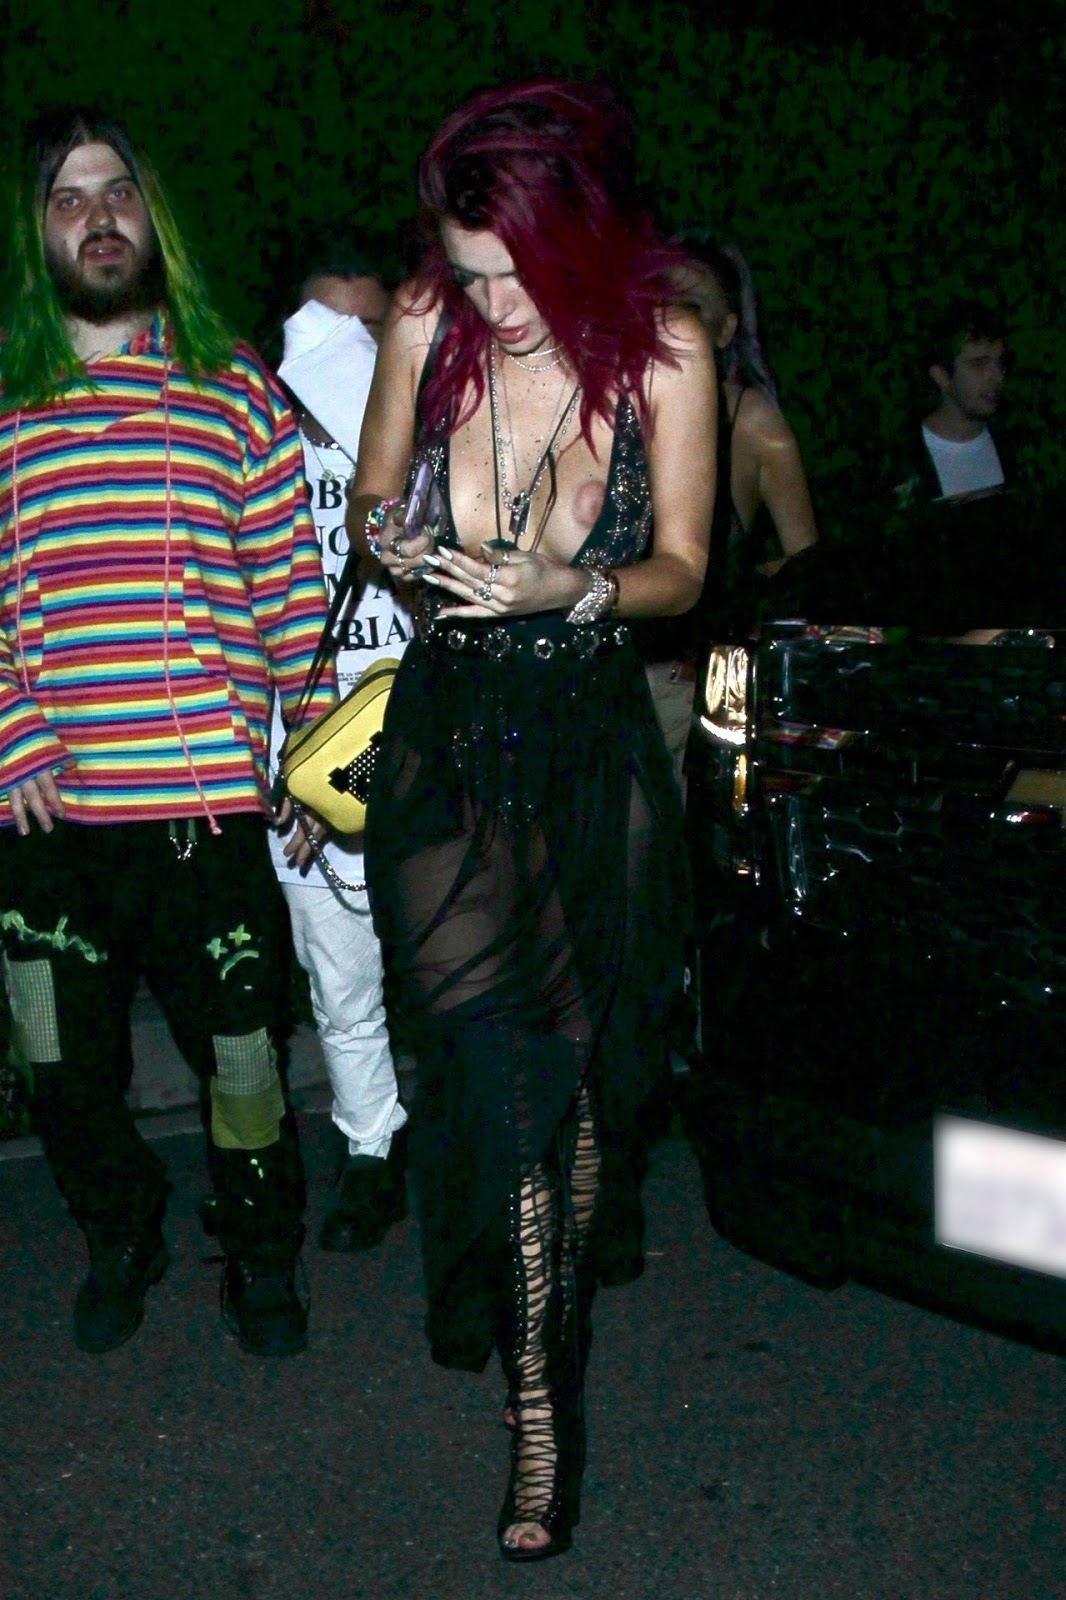 BELLA THORNE – BRALESS BOOB SLIP IN HOLLYWOOD (NSFW)